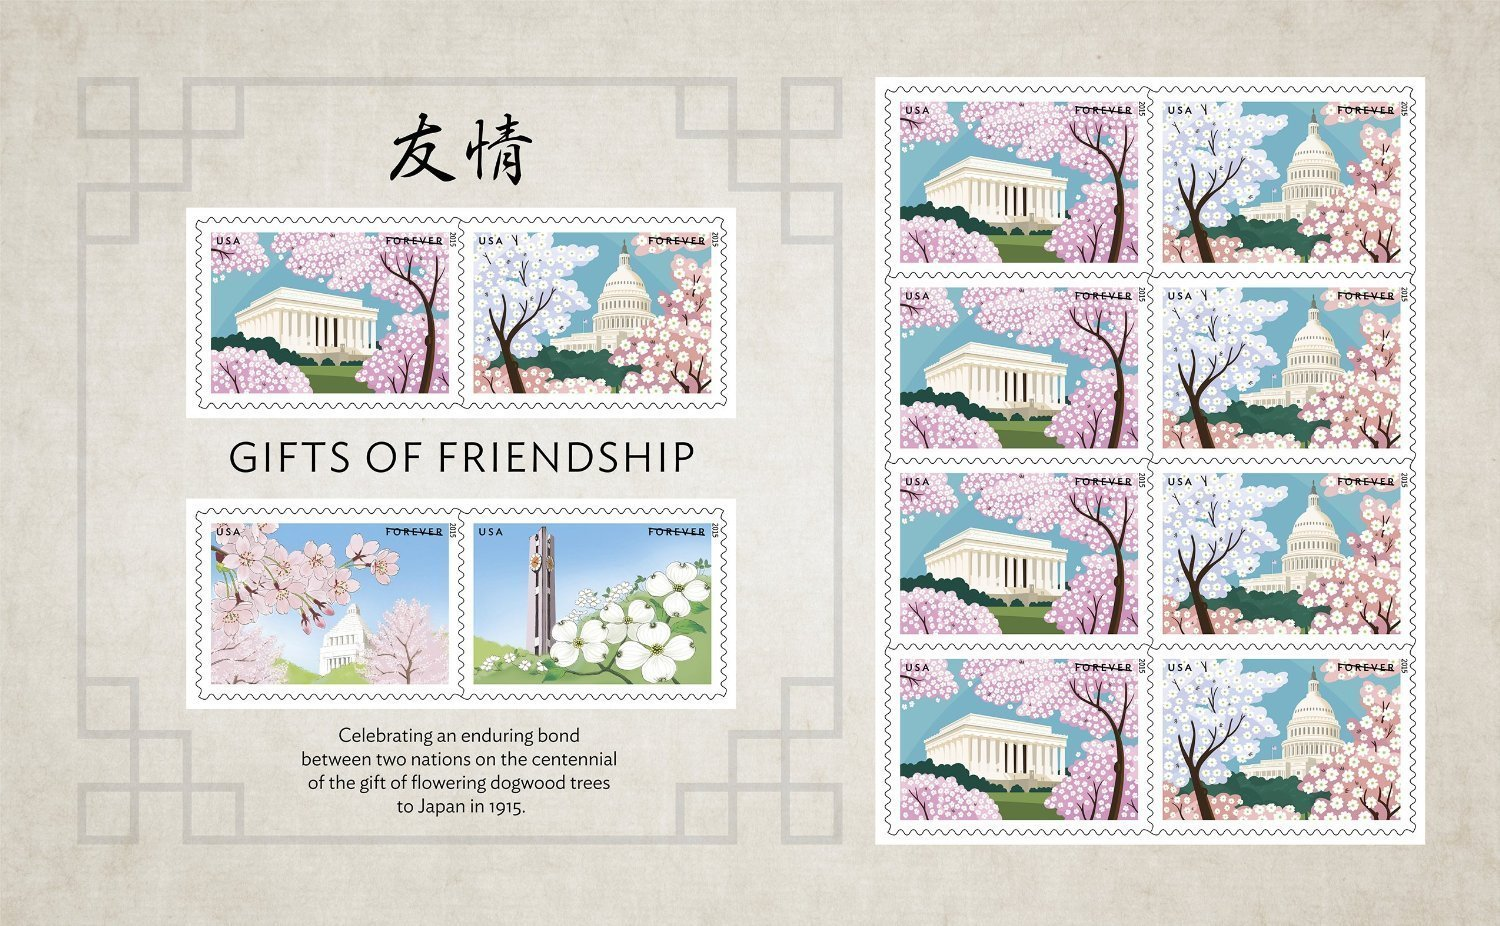 Gifts of Friendship Sheet of 12 Forever Stamps 2015 NEW RELEASE (Japan Joint Issue) SG_B00W3NLWCW_US